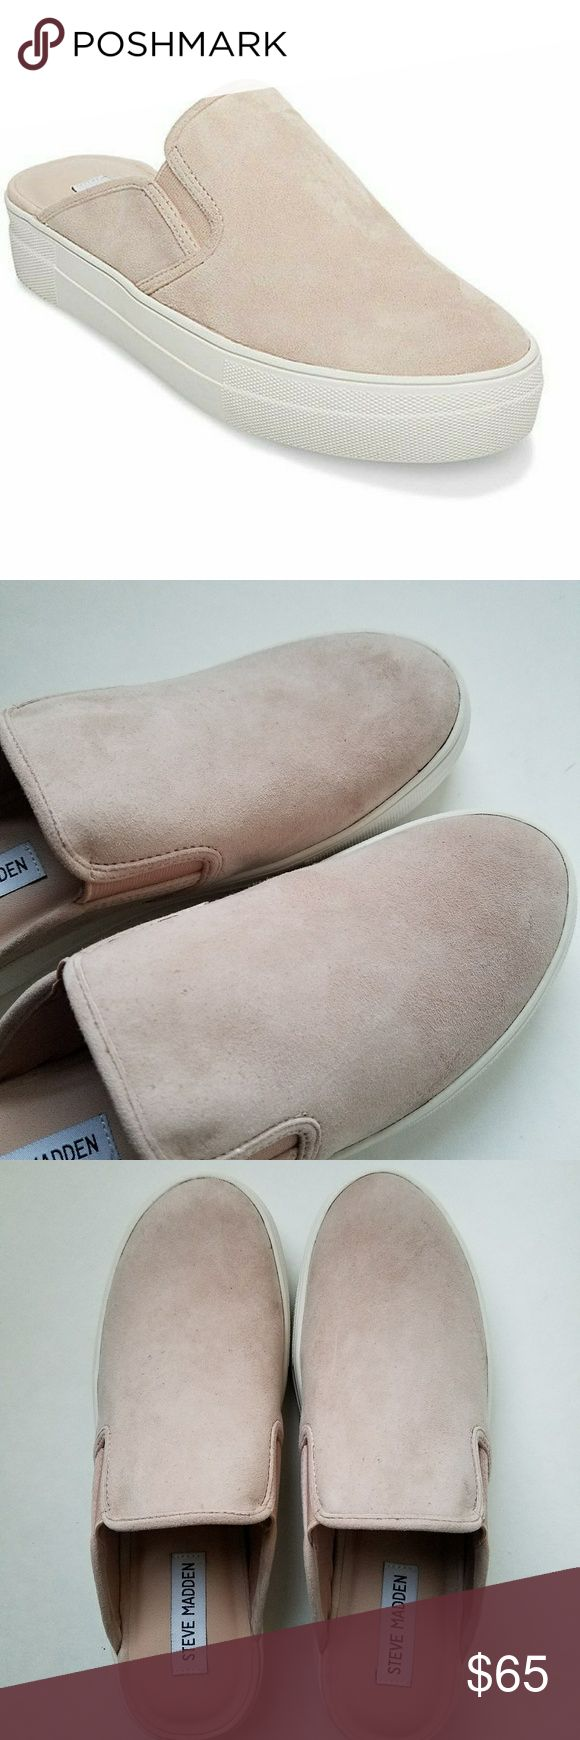 Steve MADDEN Glenda LIGHT PINK  - NEW  - IN ORIGINAL BOX  - KID SUEDE  - IMPORTED  - RUBBER SOLE  - SLIP ON SNEAKER MULE - SUPER COMFORTABLE Steve Madden Shoes Mules & Clogs